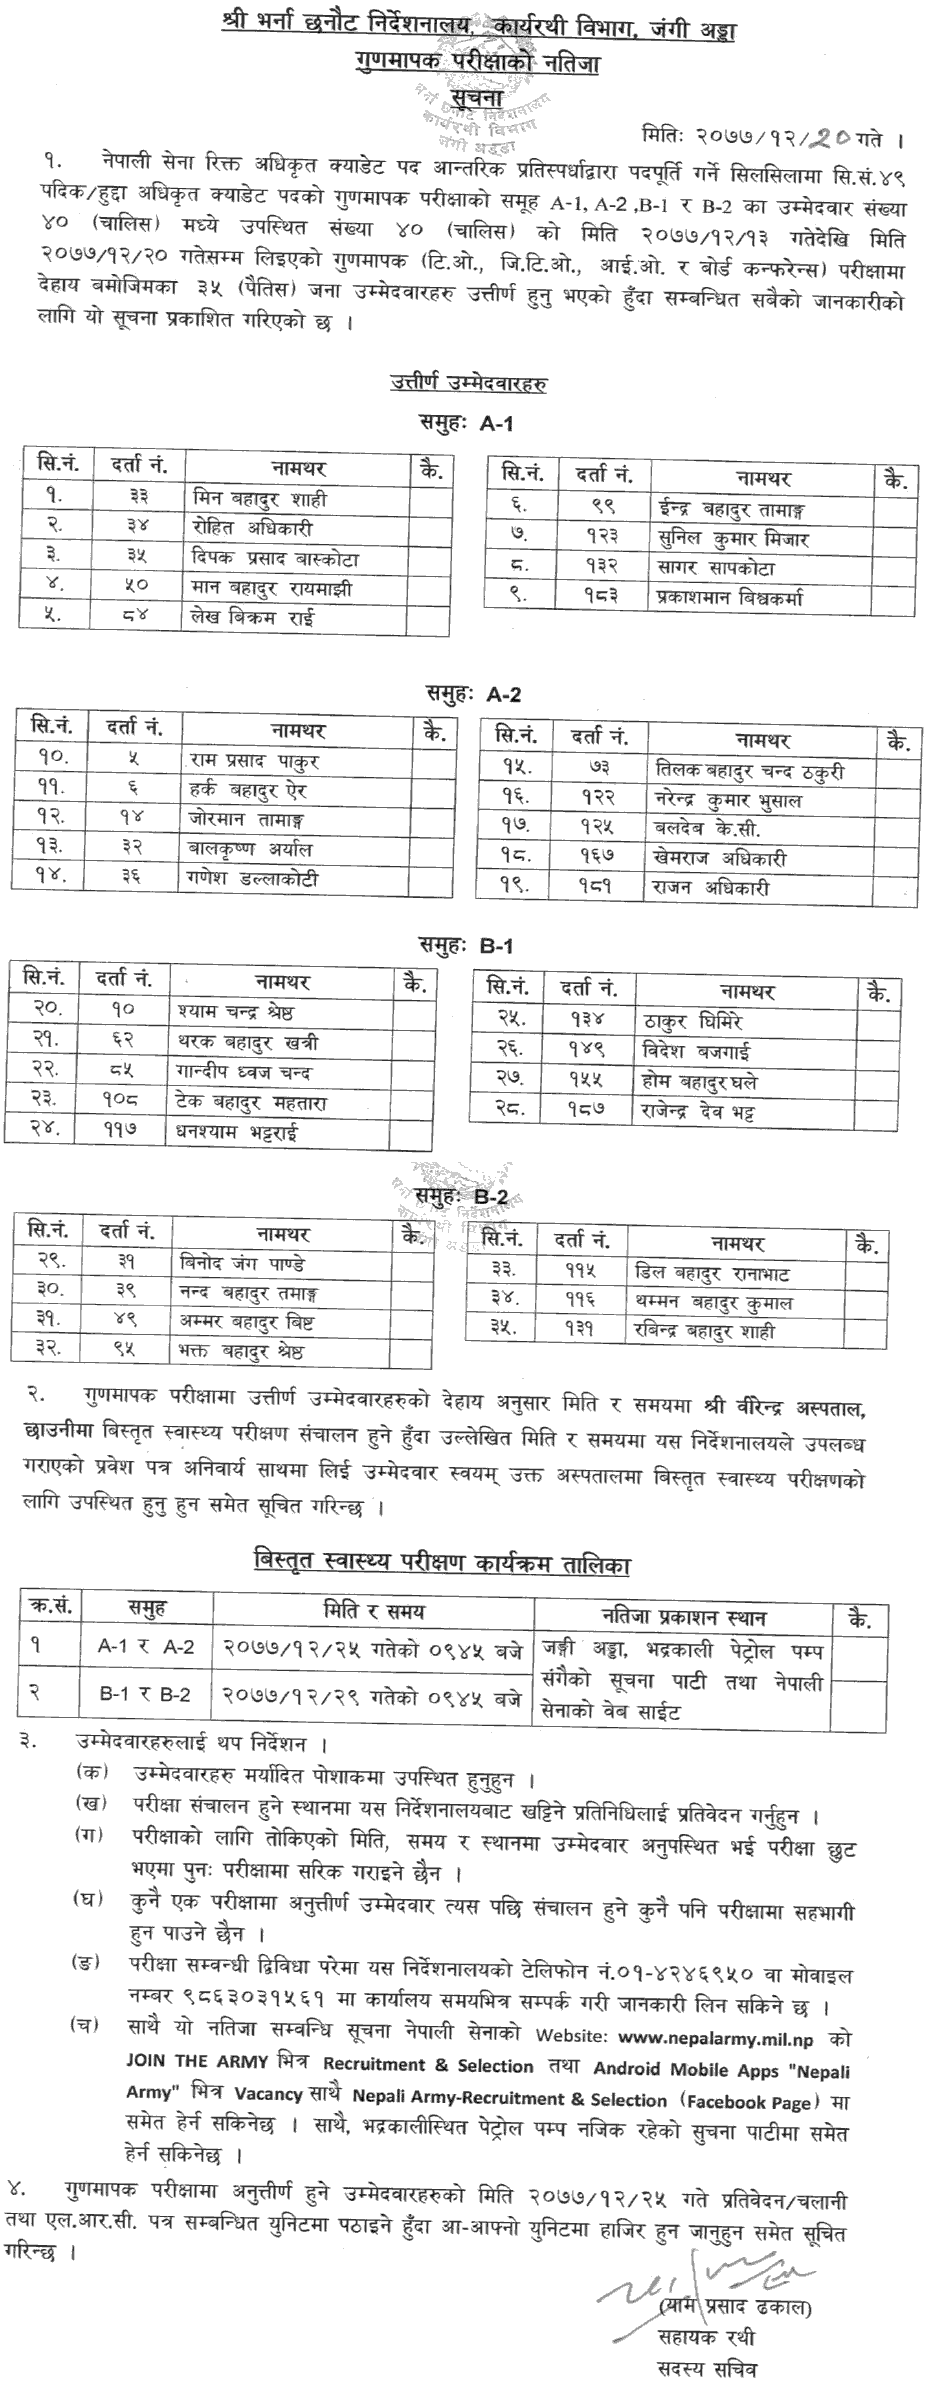 Nepal Army Cadet Officer (Hudda) Result of TO, GTO, IO, and Board Conference